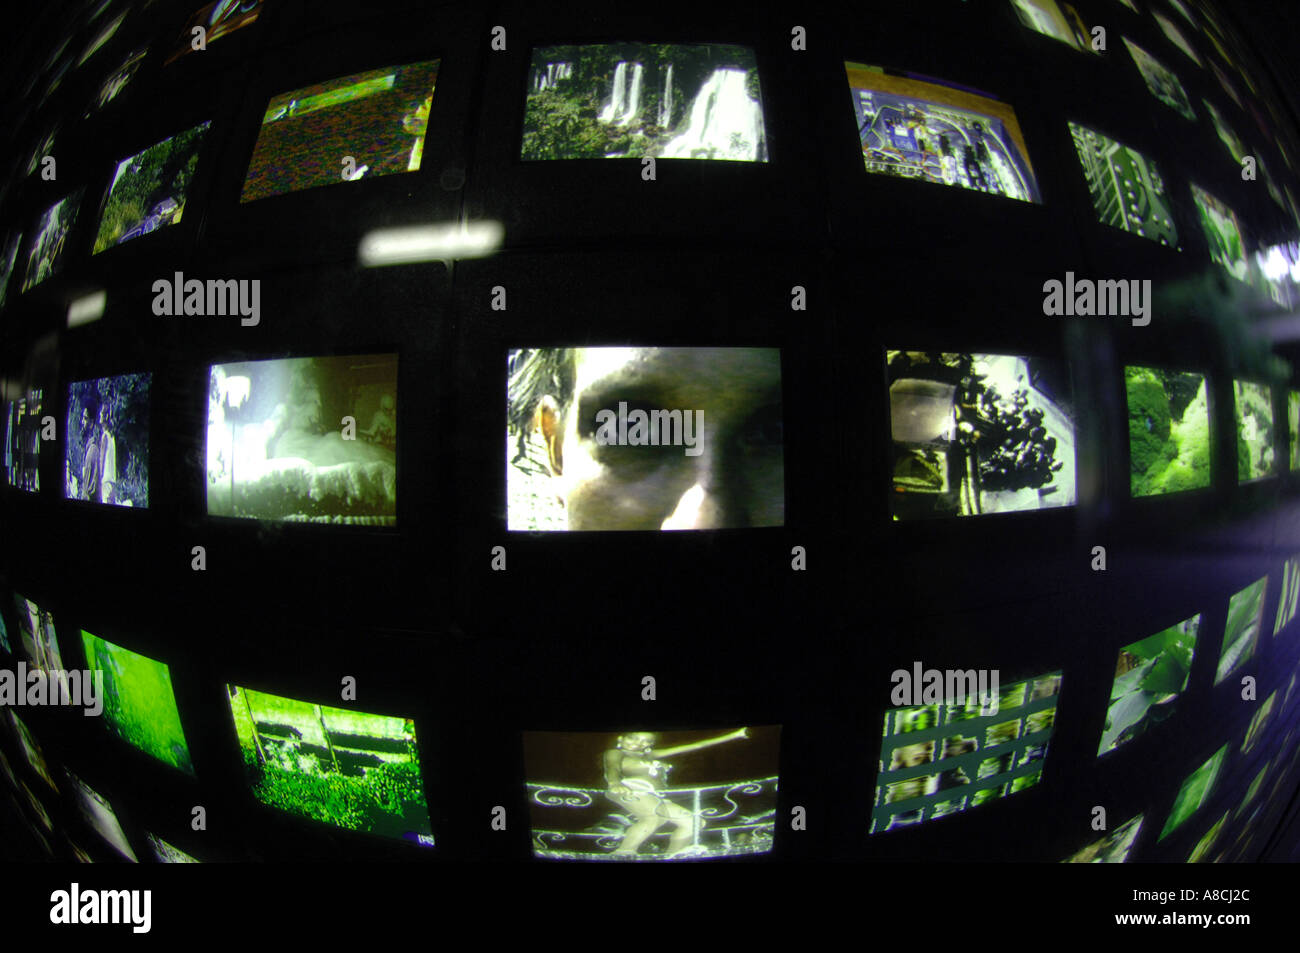 mass media slideshow transparencies art arty graphic, surveillance, haunting, negative, sinister, big brother is watching you - Stock Image